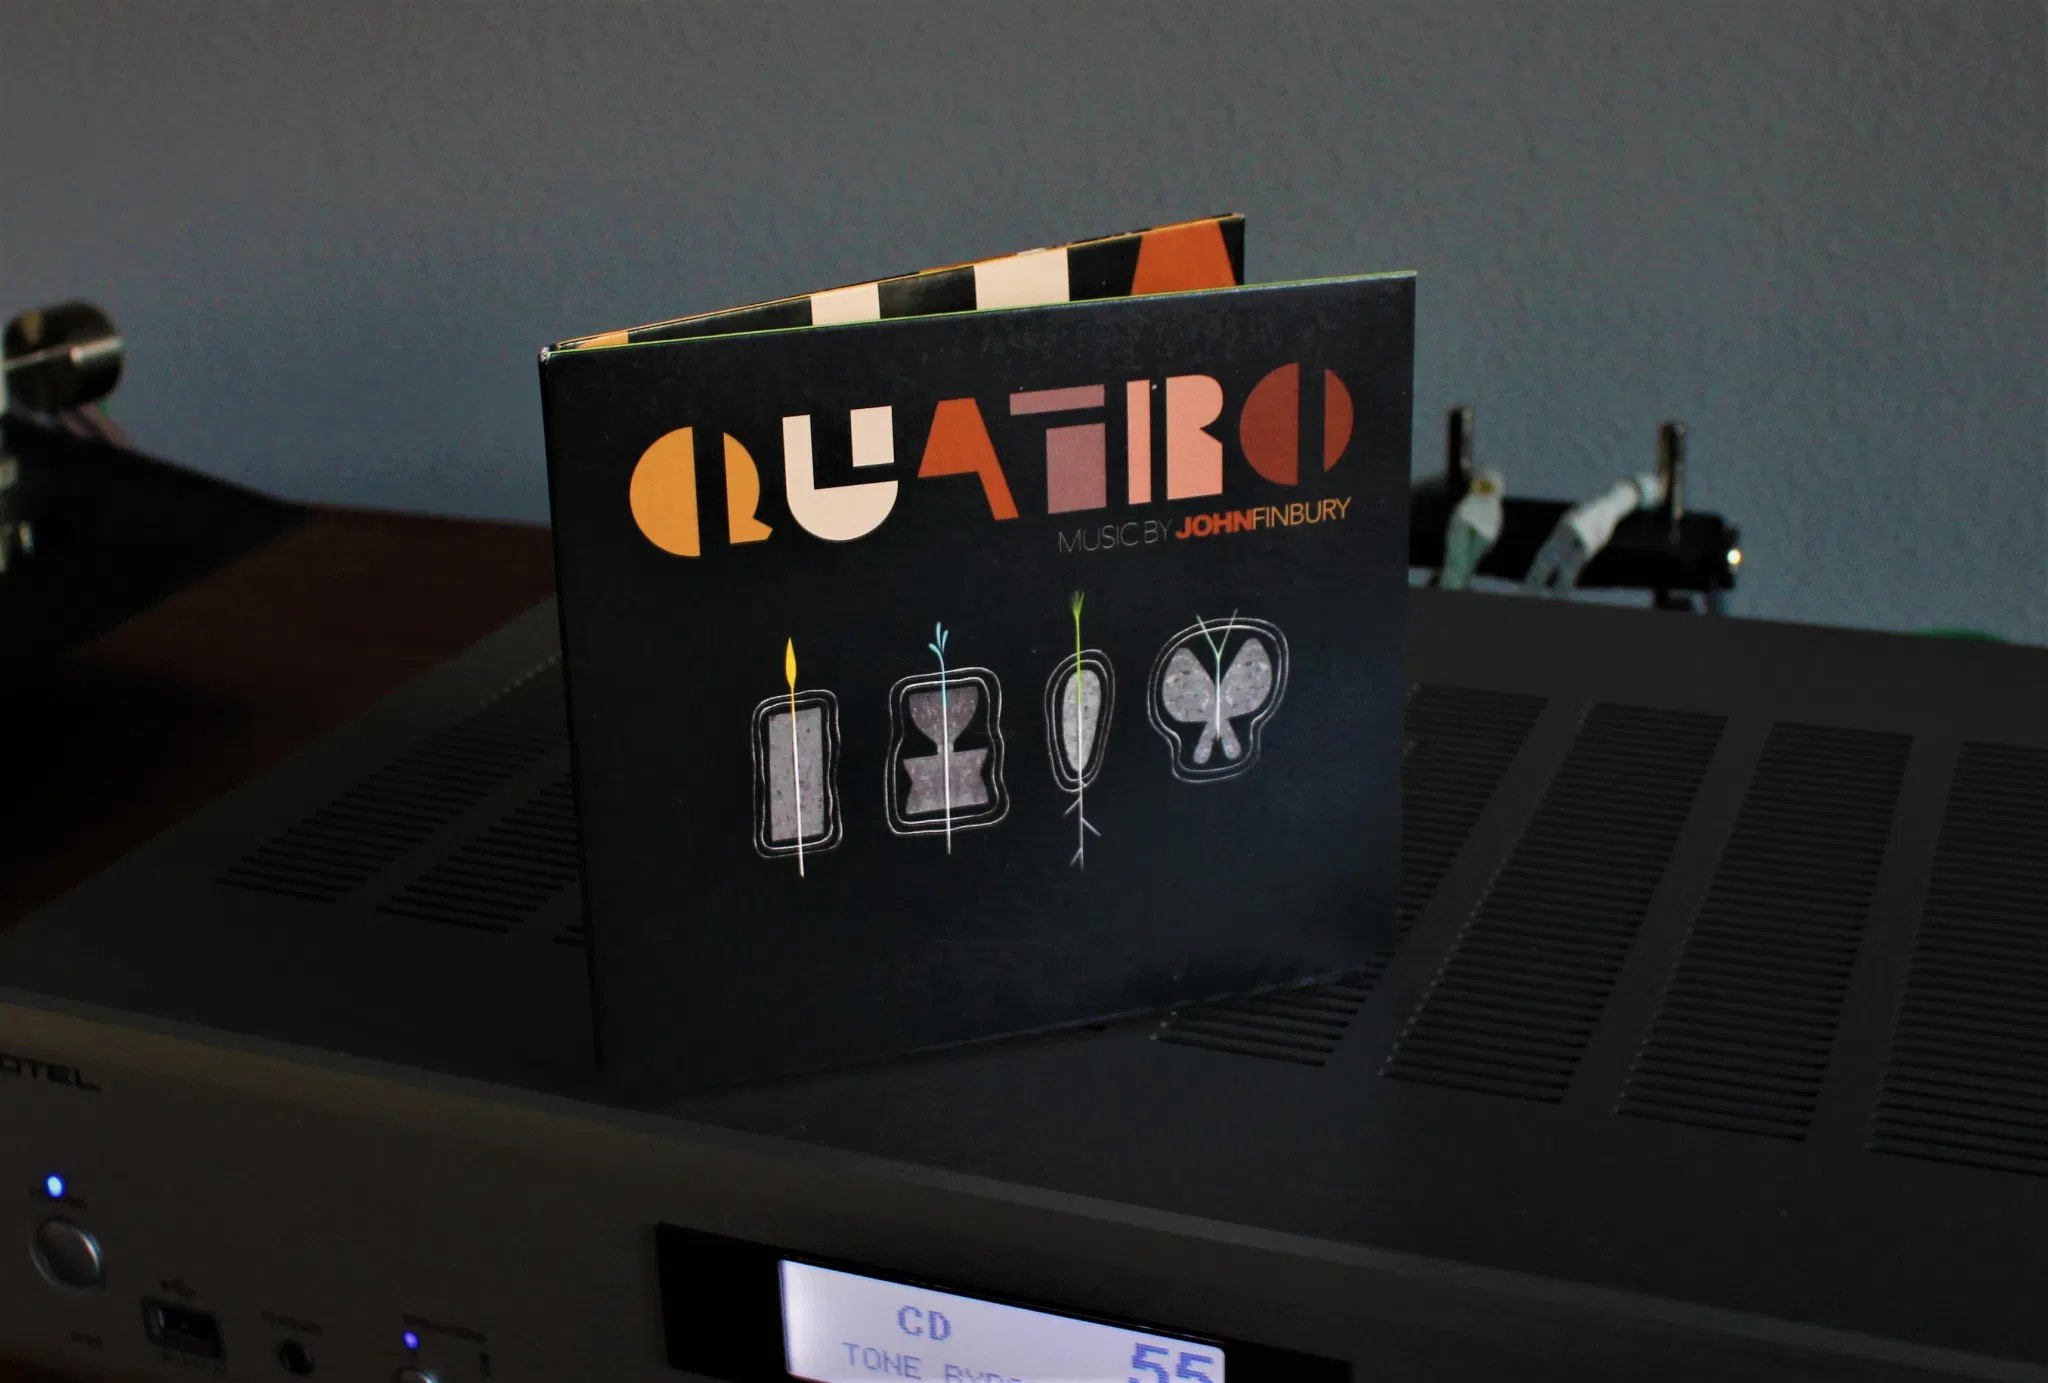 John Finbury, Quatro | The Vinyl Anachronist By Part-Time Audiophile Photo